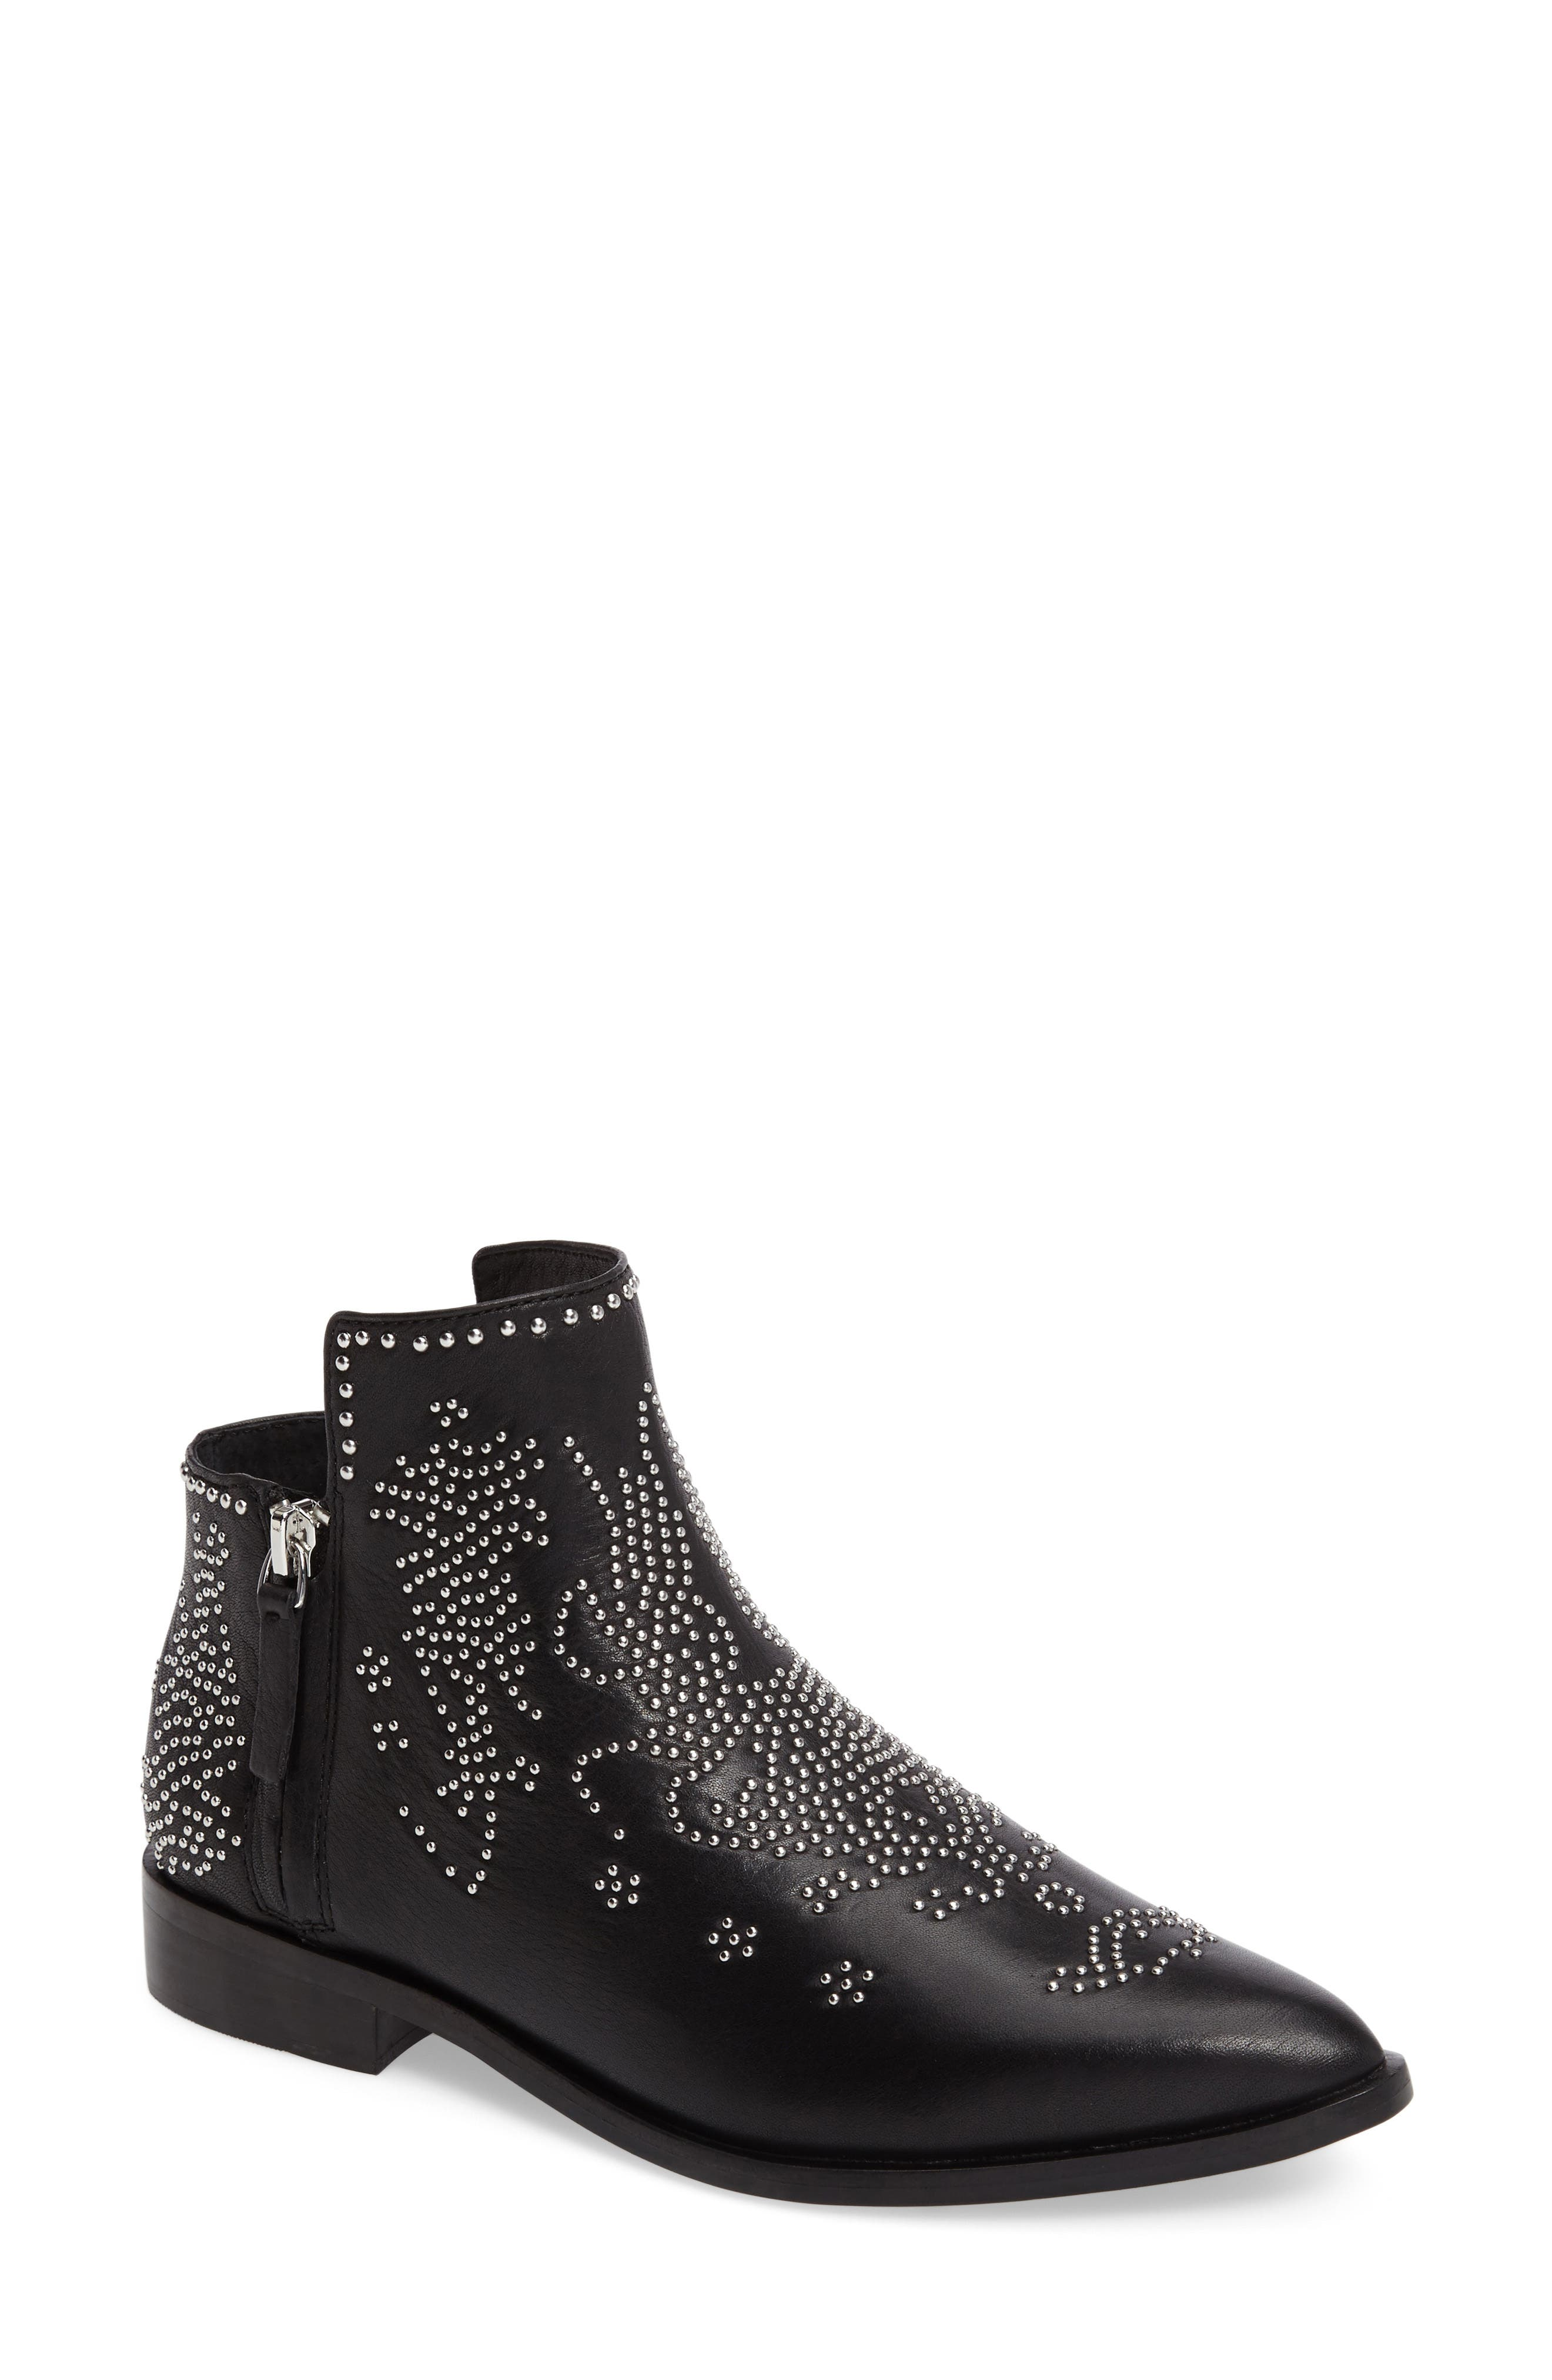 Callback2 Studded Bootie,                         Main,                         color, Black Leather